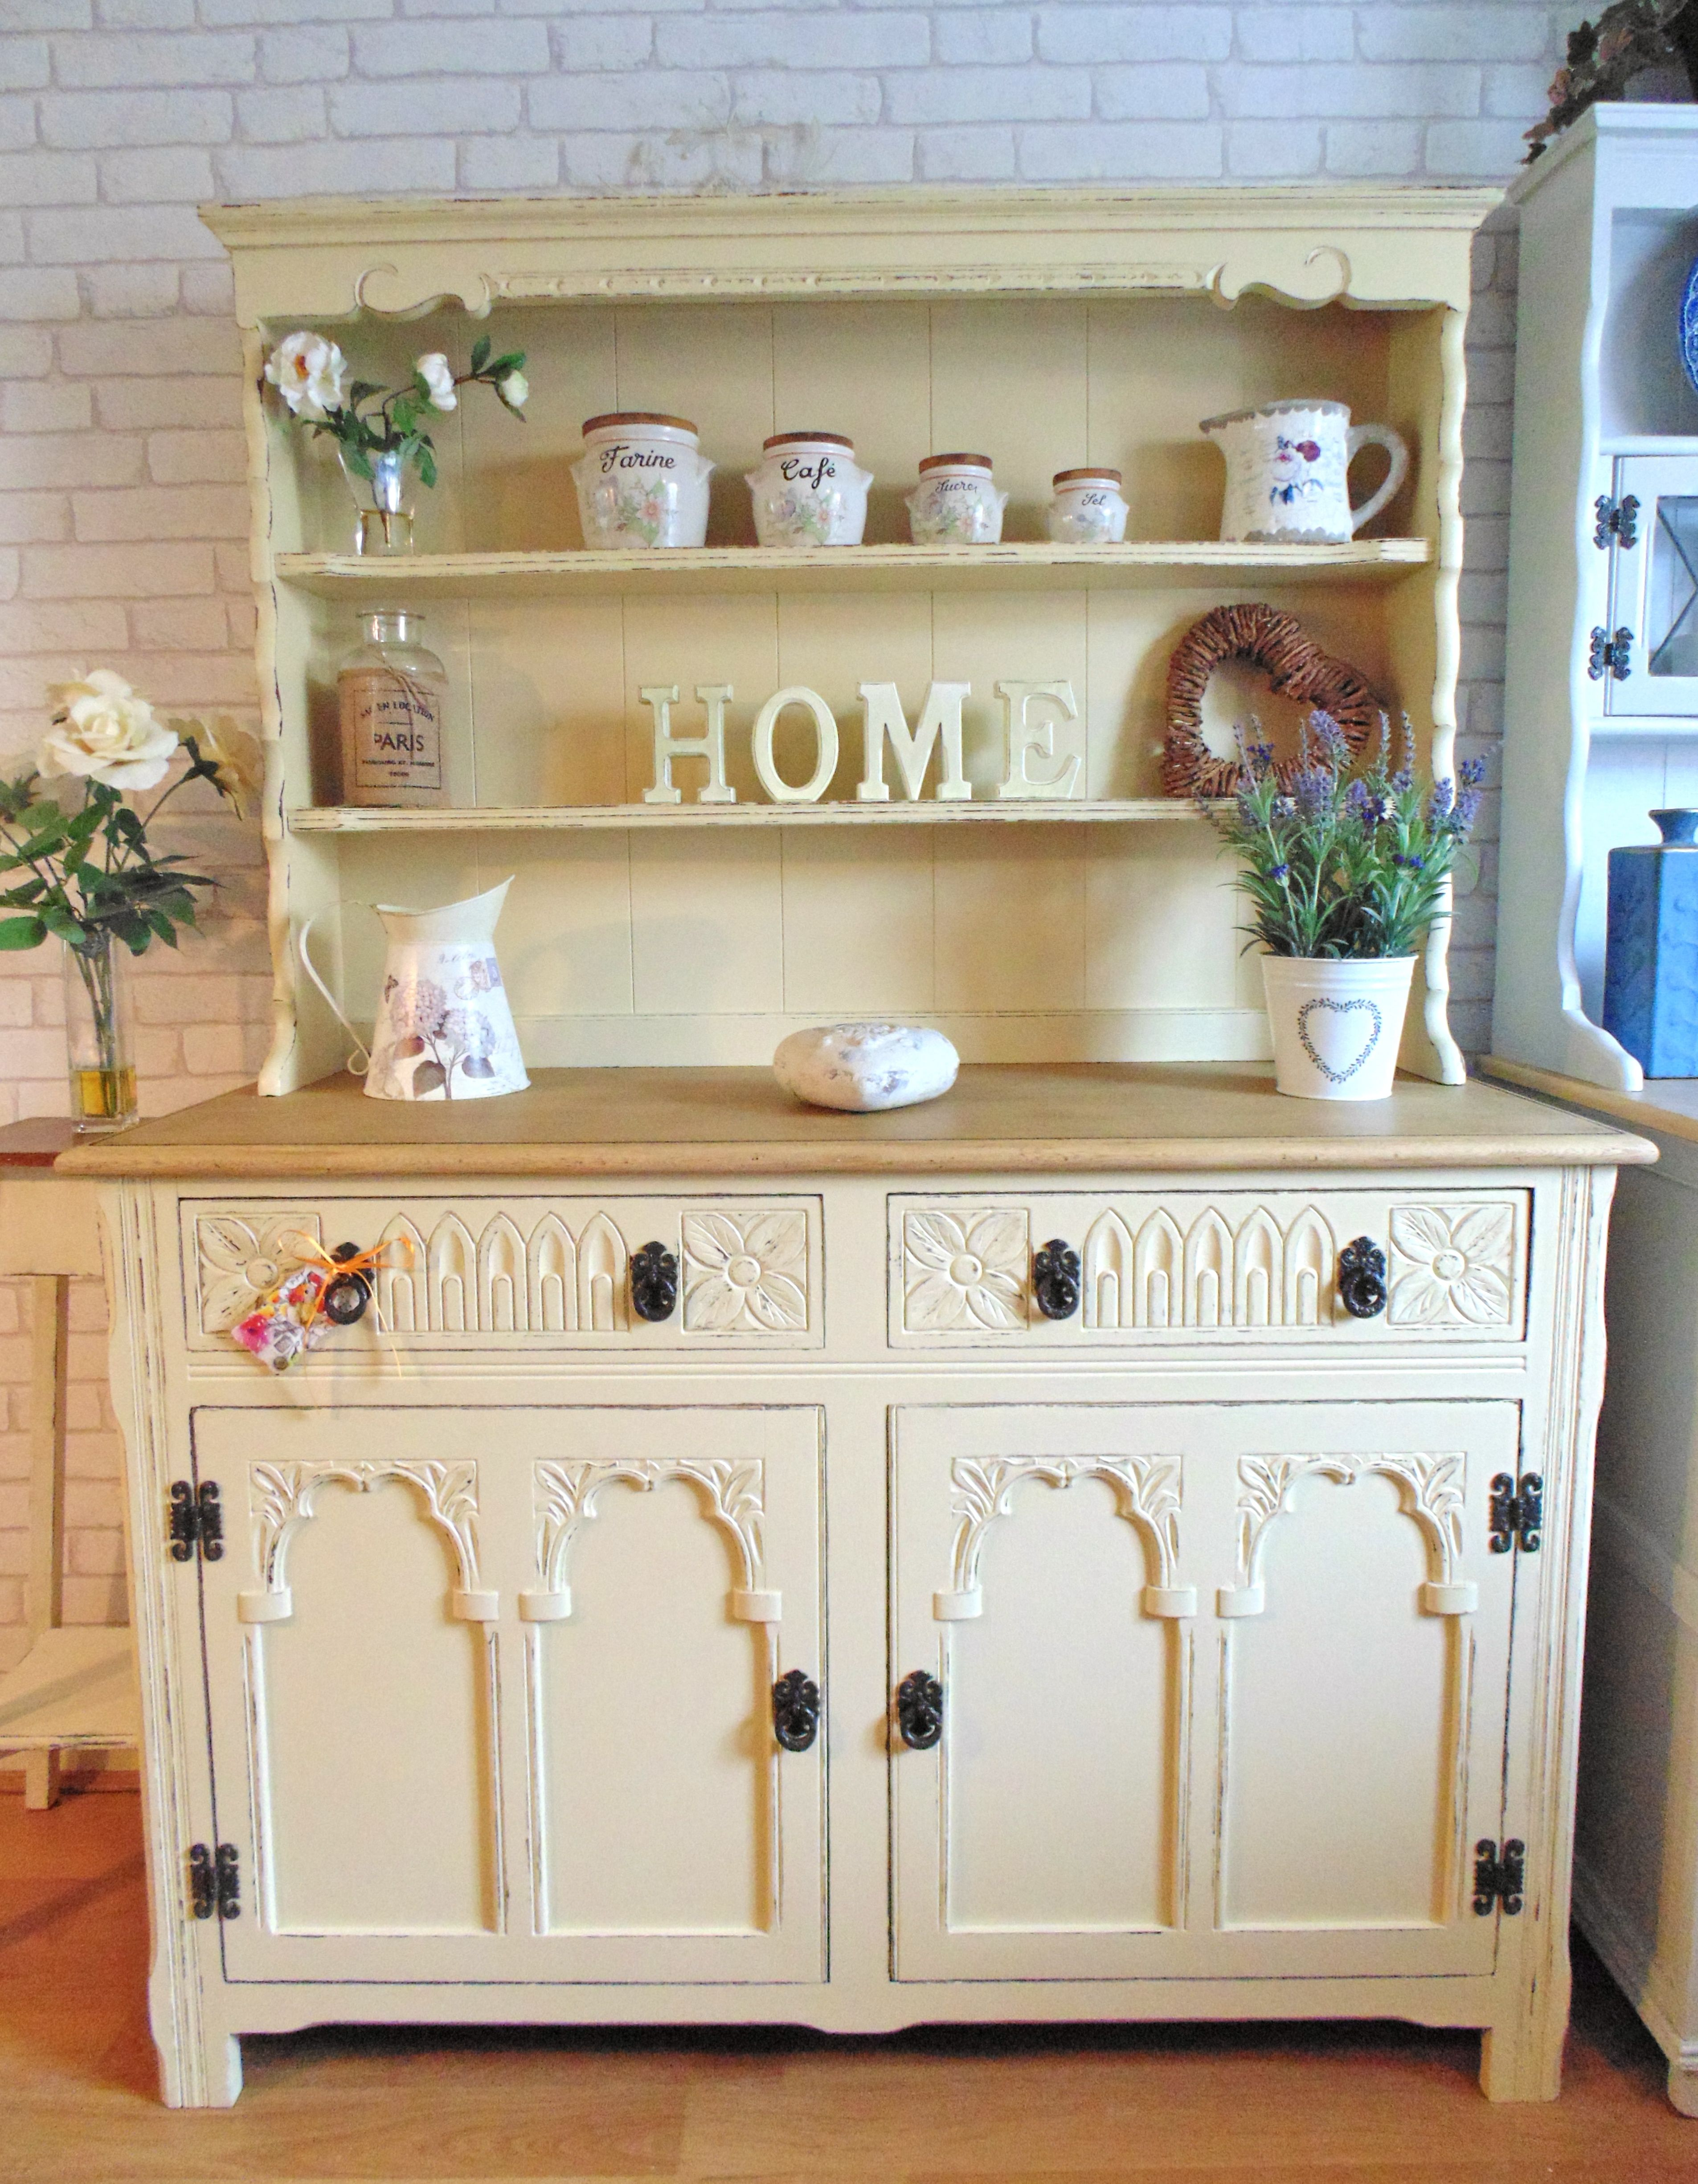 Stunning country kitchen welsh dresser painted in farrow u ball